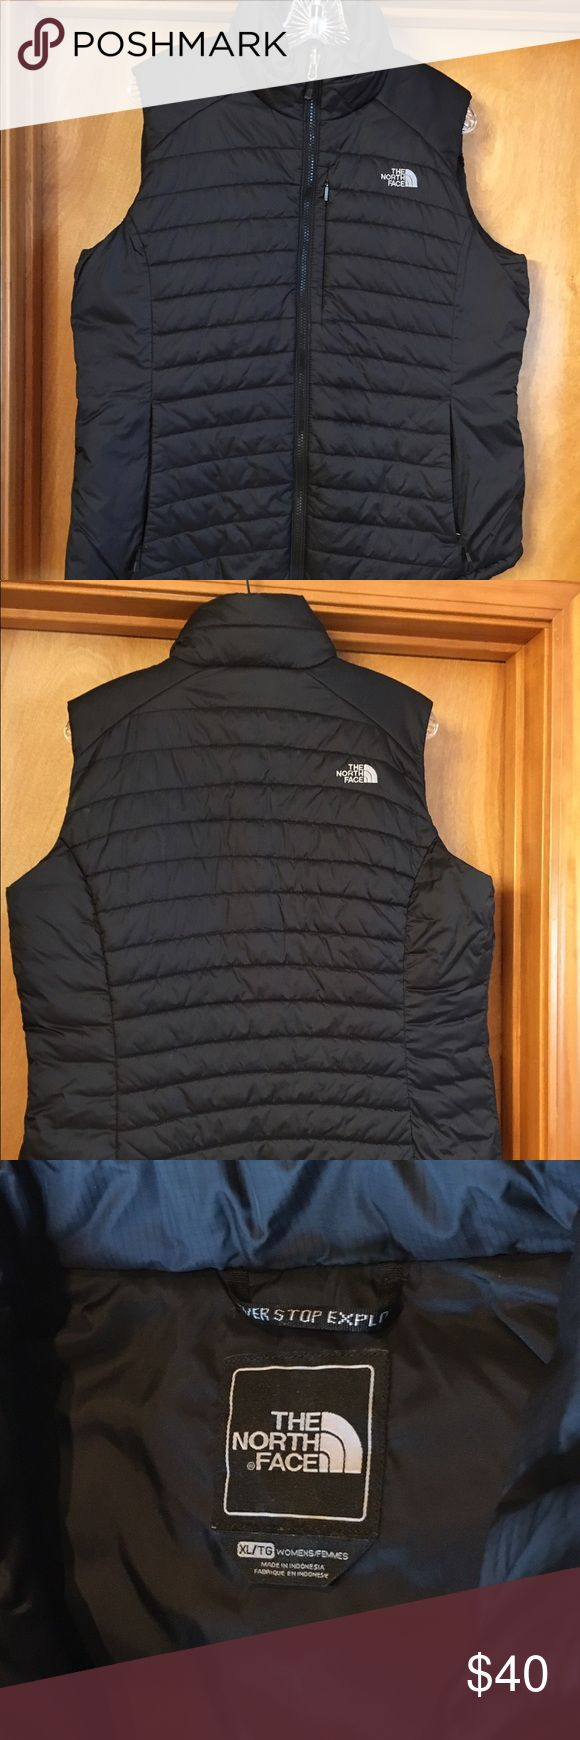 The North Face poly fill vest The North Face vest, nice and cozy but not too puffy. Ladies XL. The North Face Jackets & Coats Vests